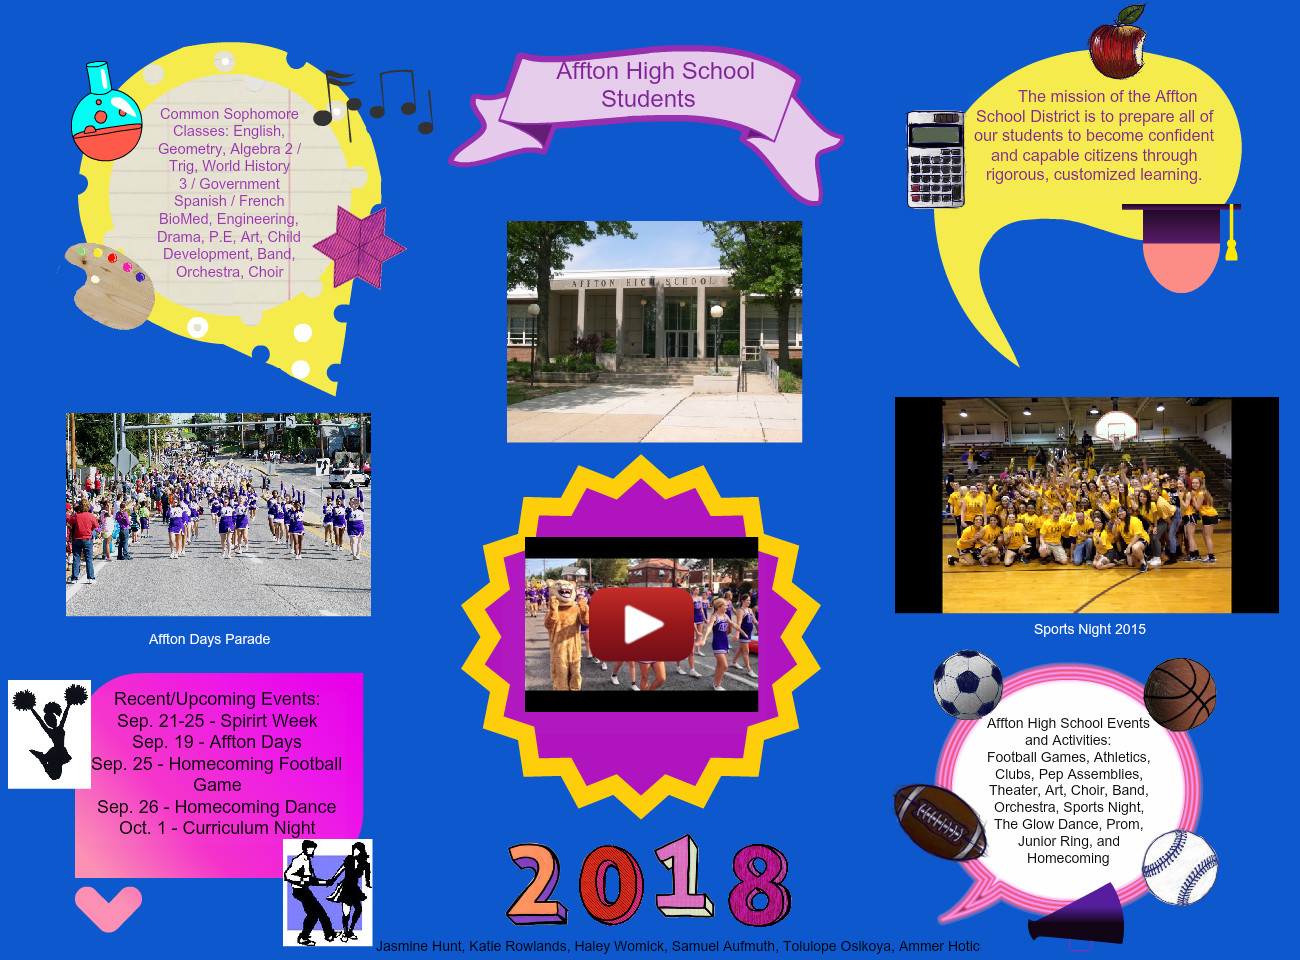 Affton High School Students: text, images, music, video | Glogster